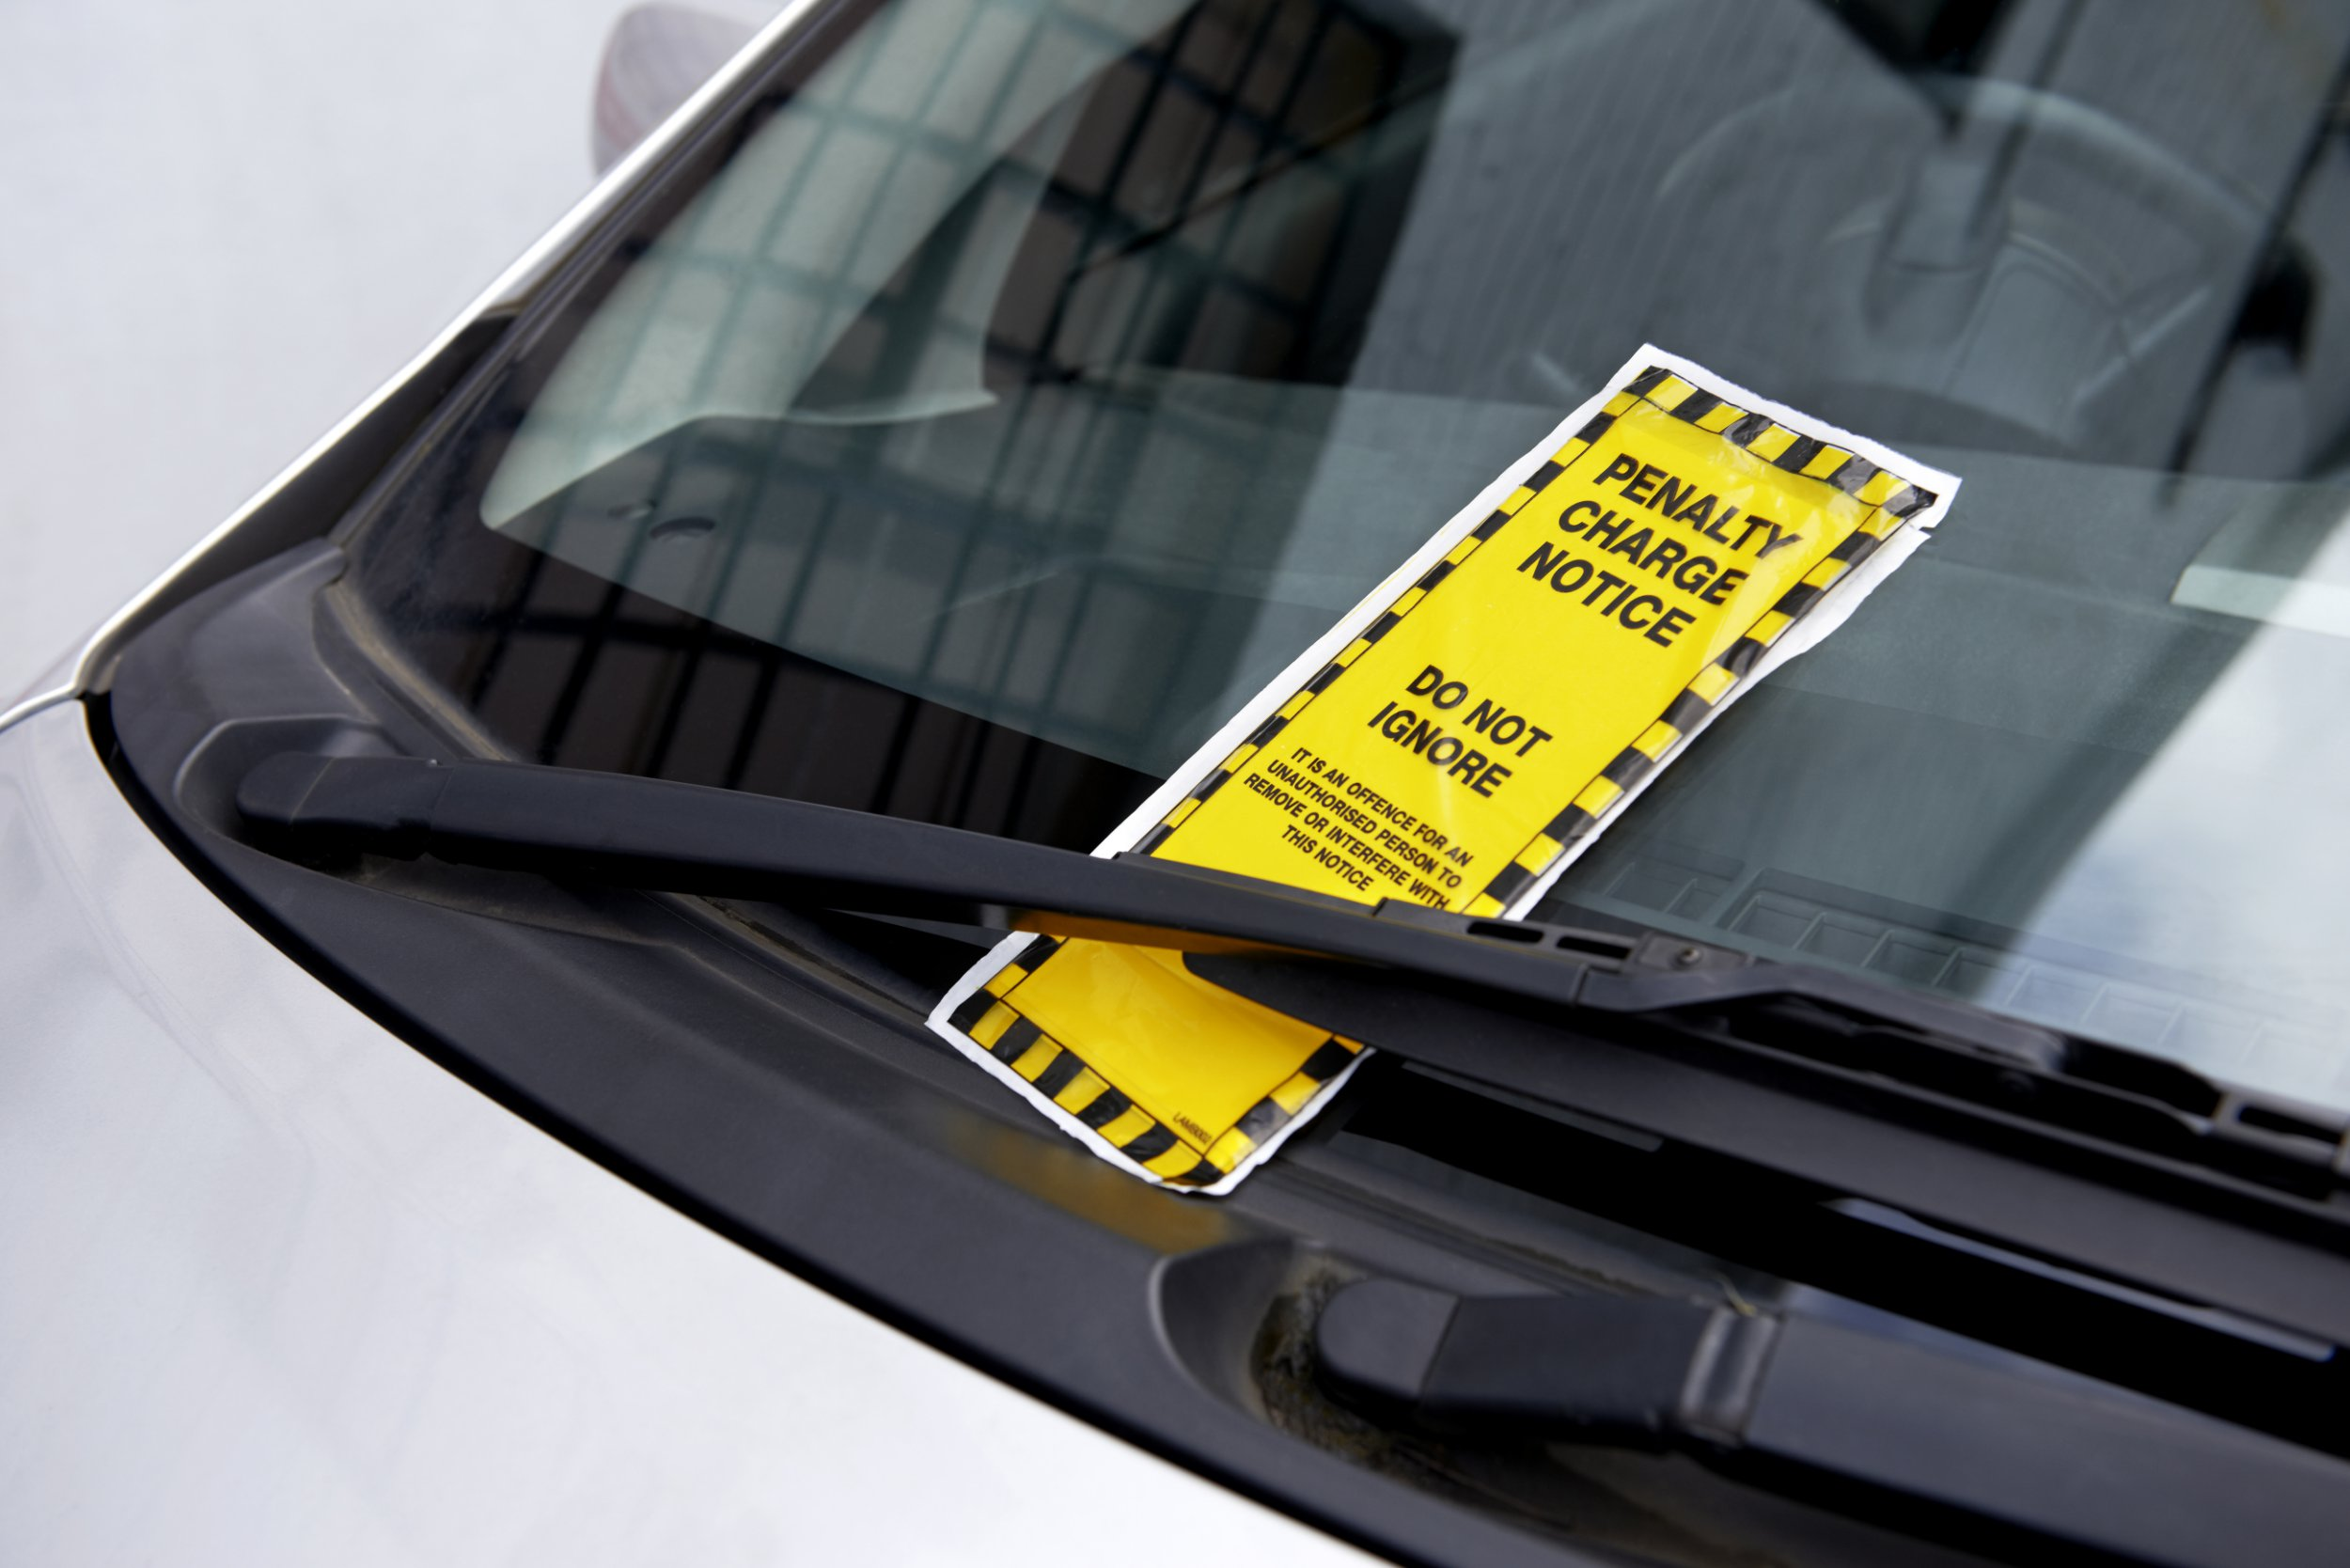 You're more likely to avoid parking fines if you live in these areas